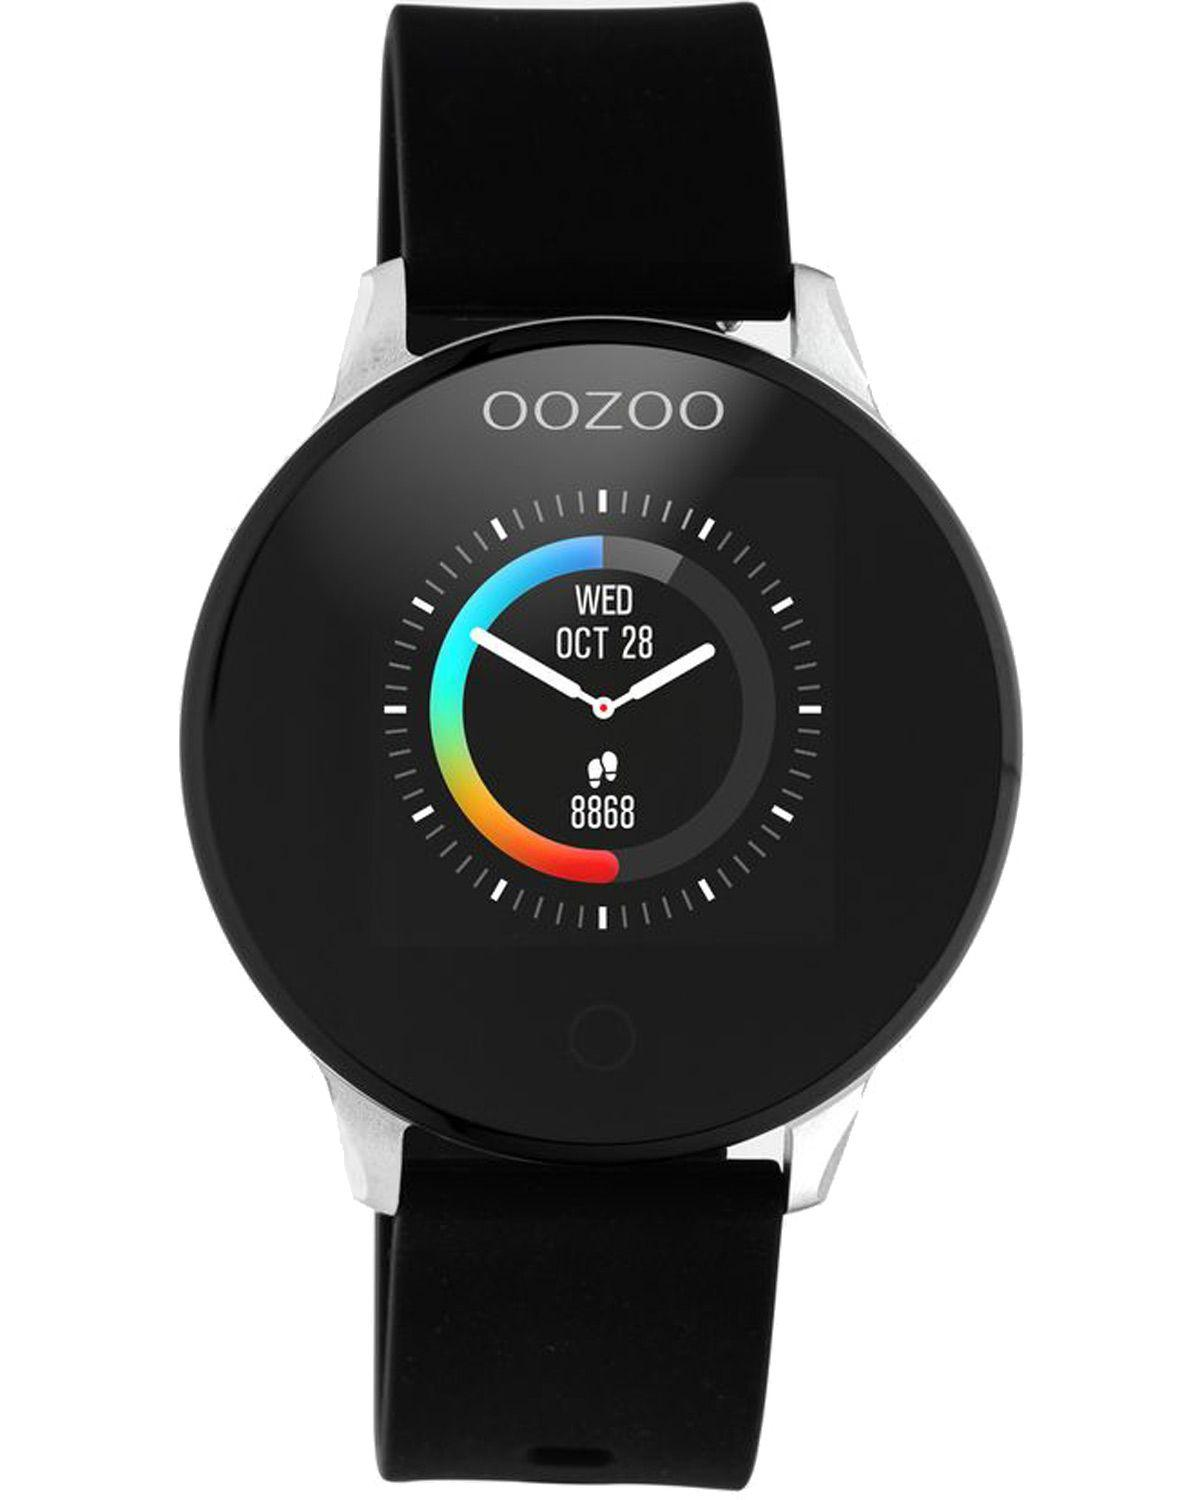 OOZOO Smartwatch - Q00113, Silver case with Black Rubber Strap